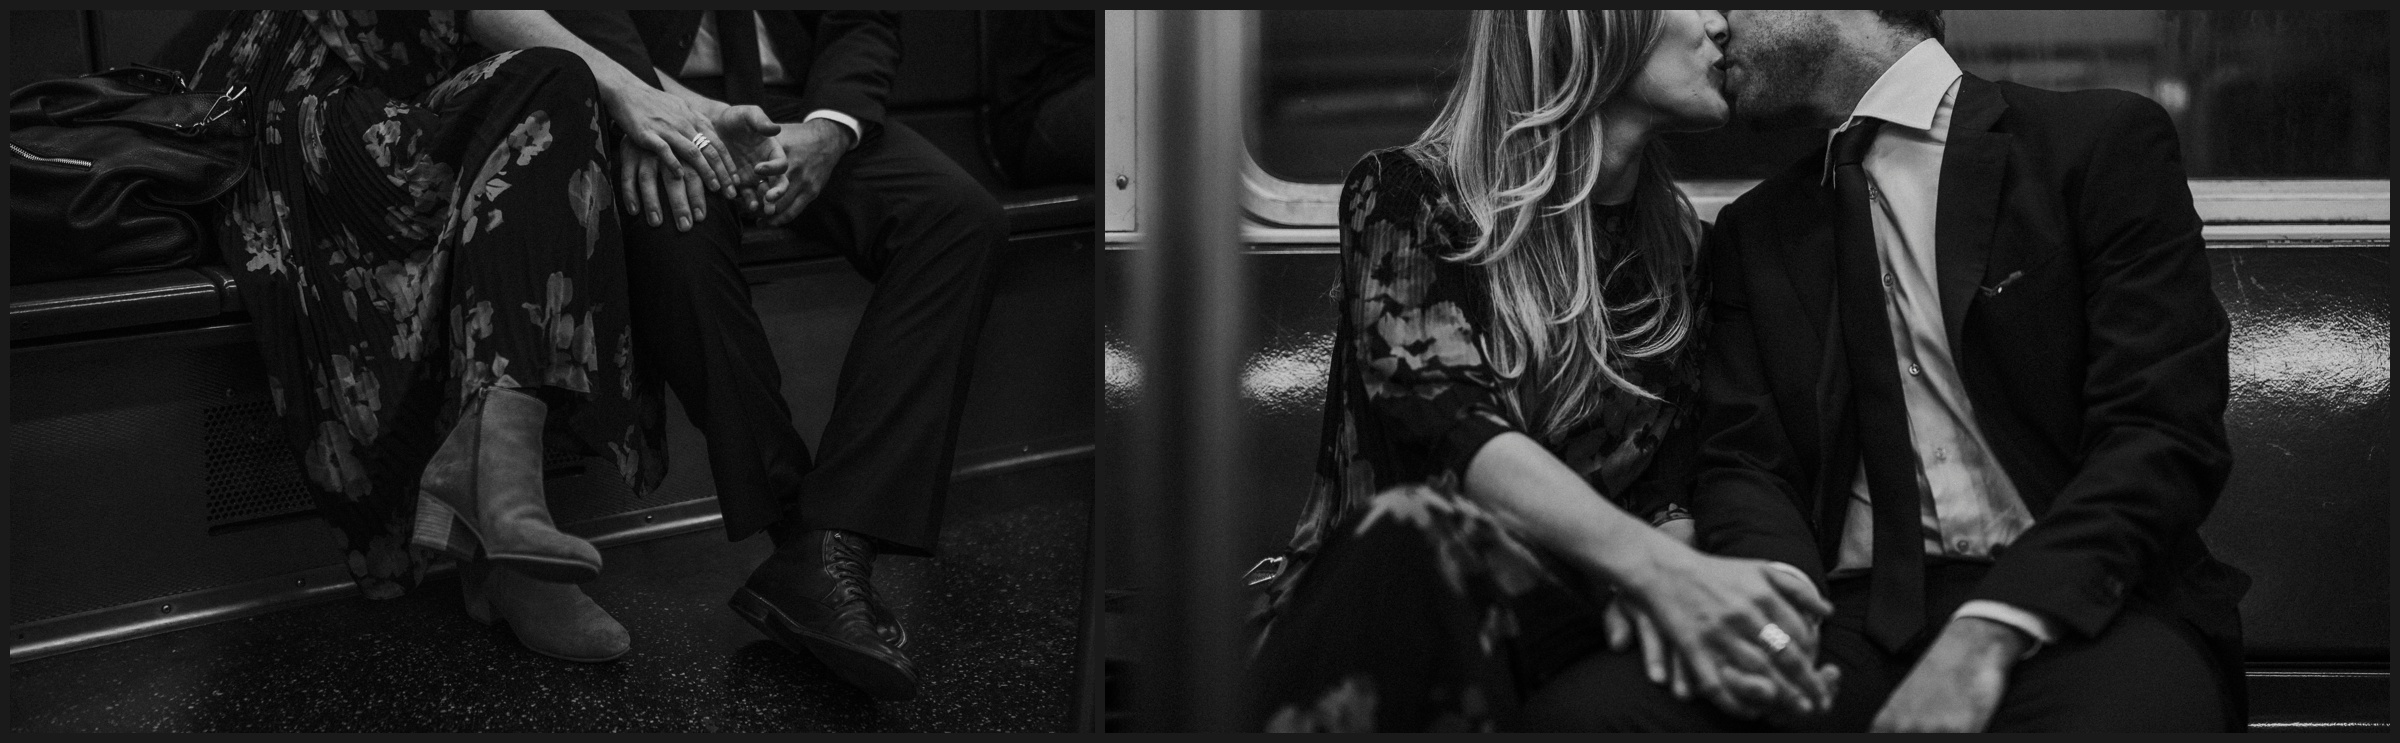 engagement photos inside a new york train and details